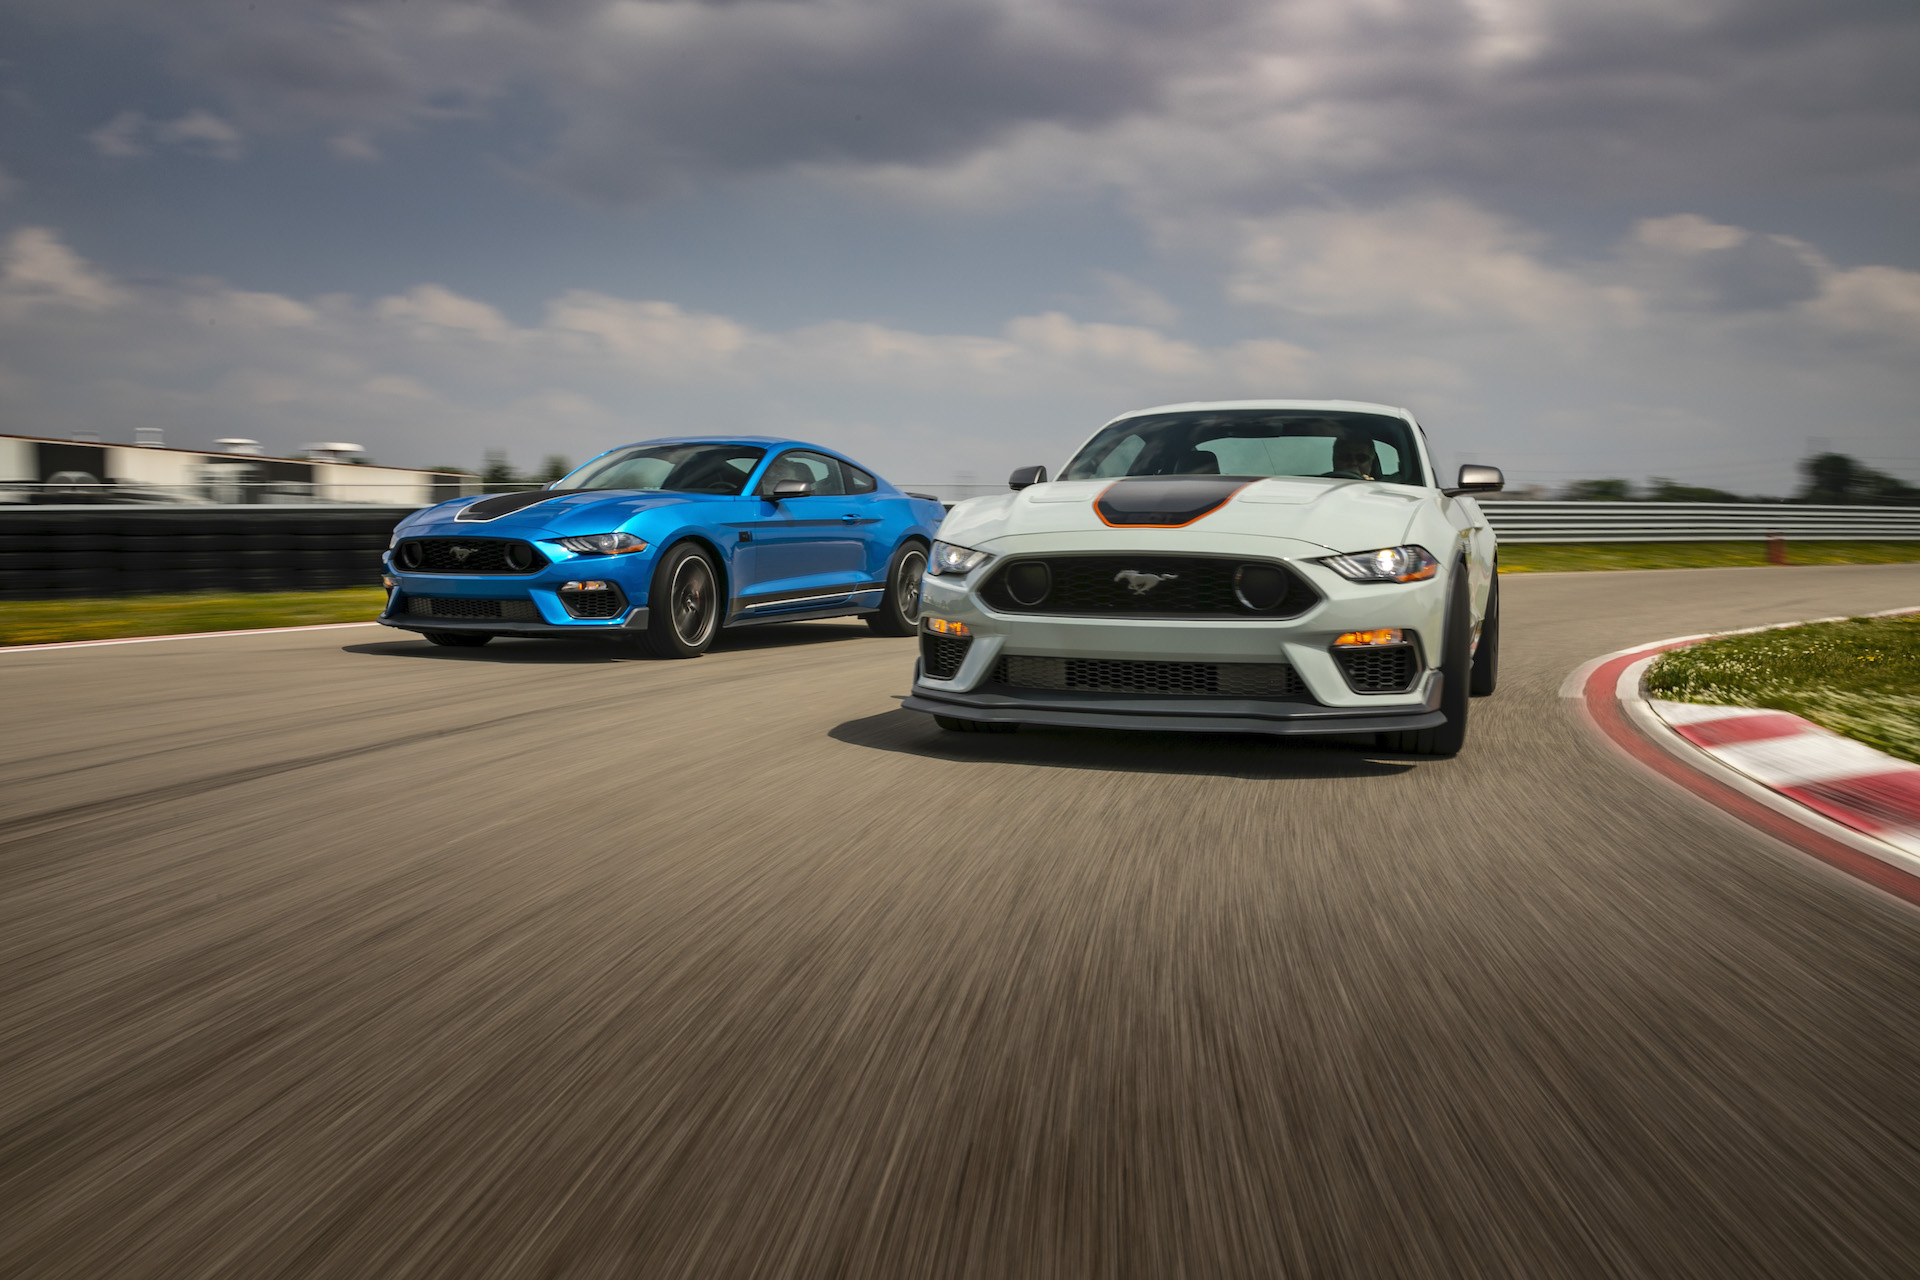 Preview: 2021 Ford Mustang revives Mach 1 nameplate, adds colors